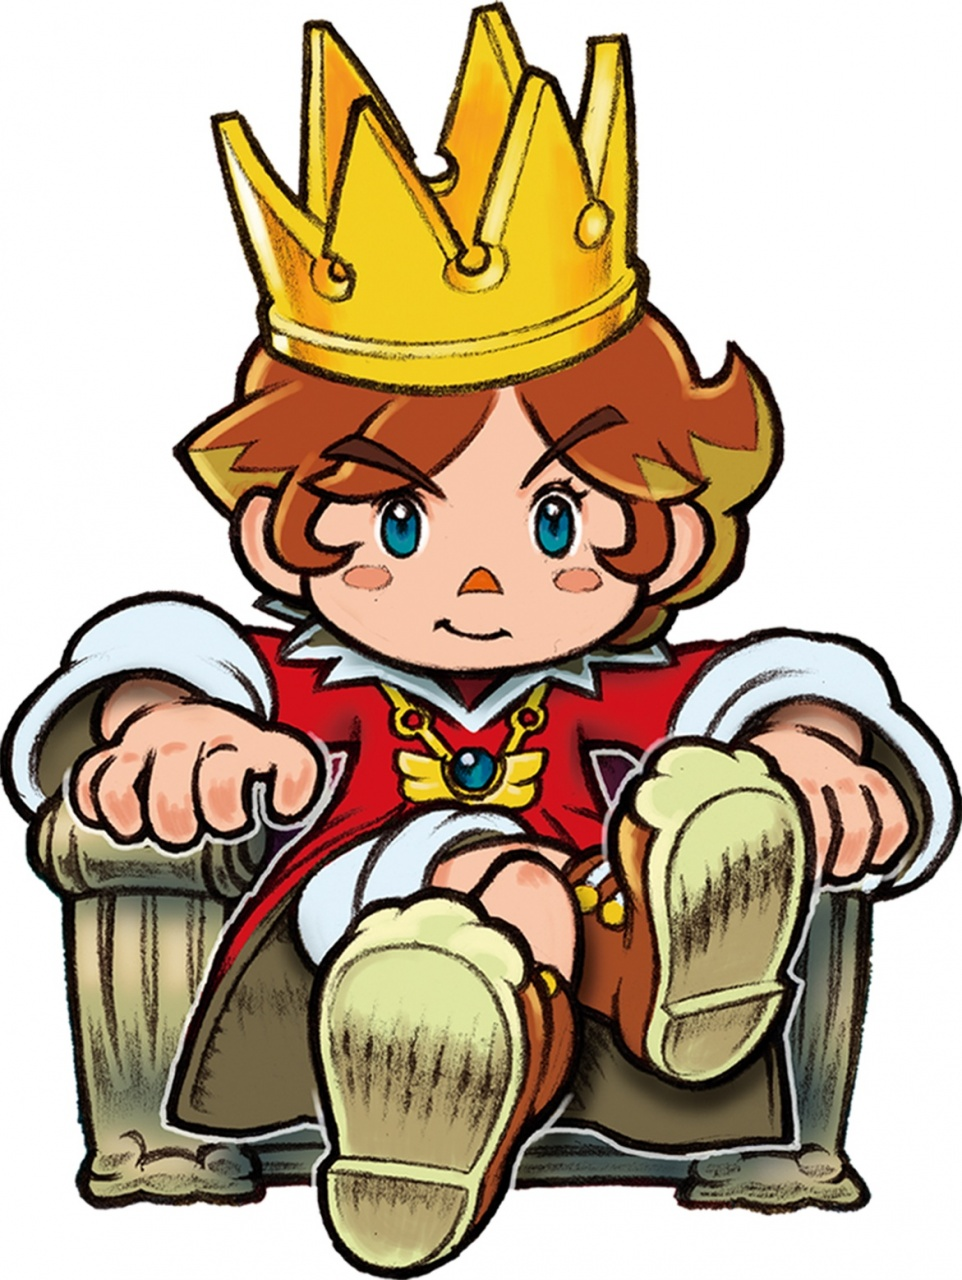 King clipart png image freeuse library King Clipart | Free Clip-art image freeuse library